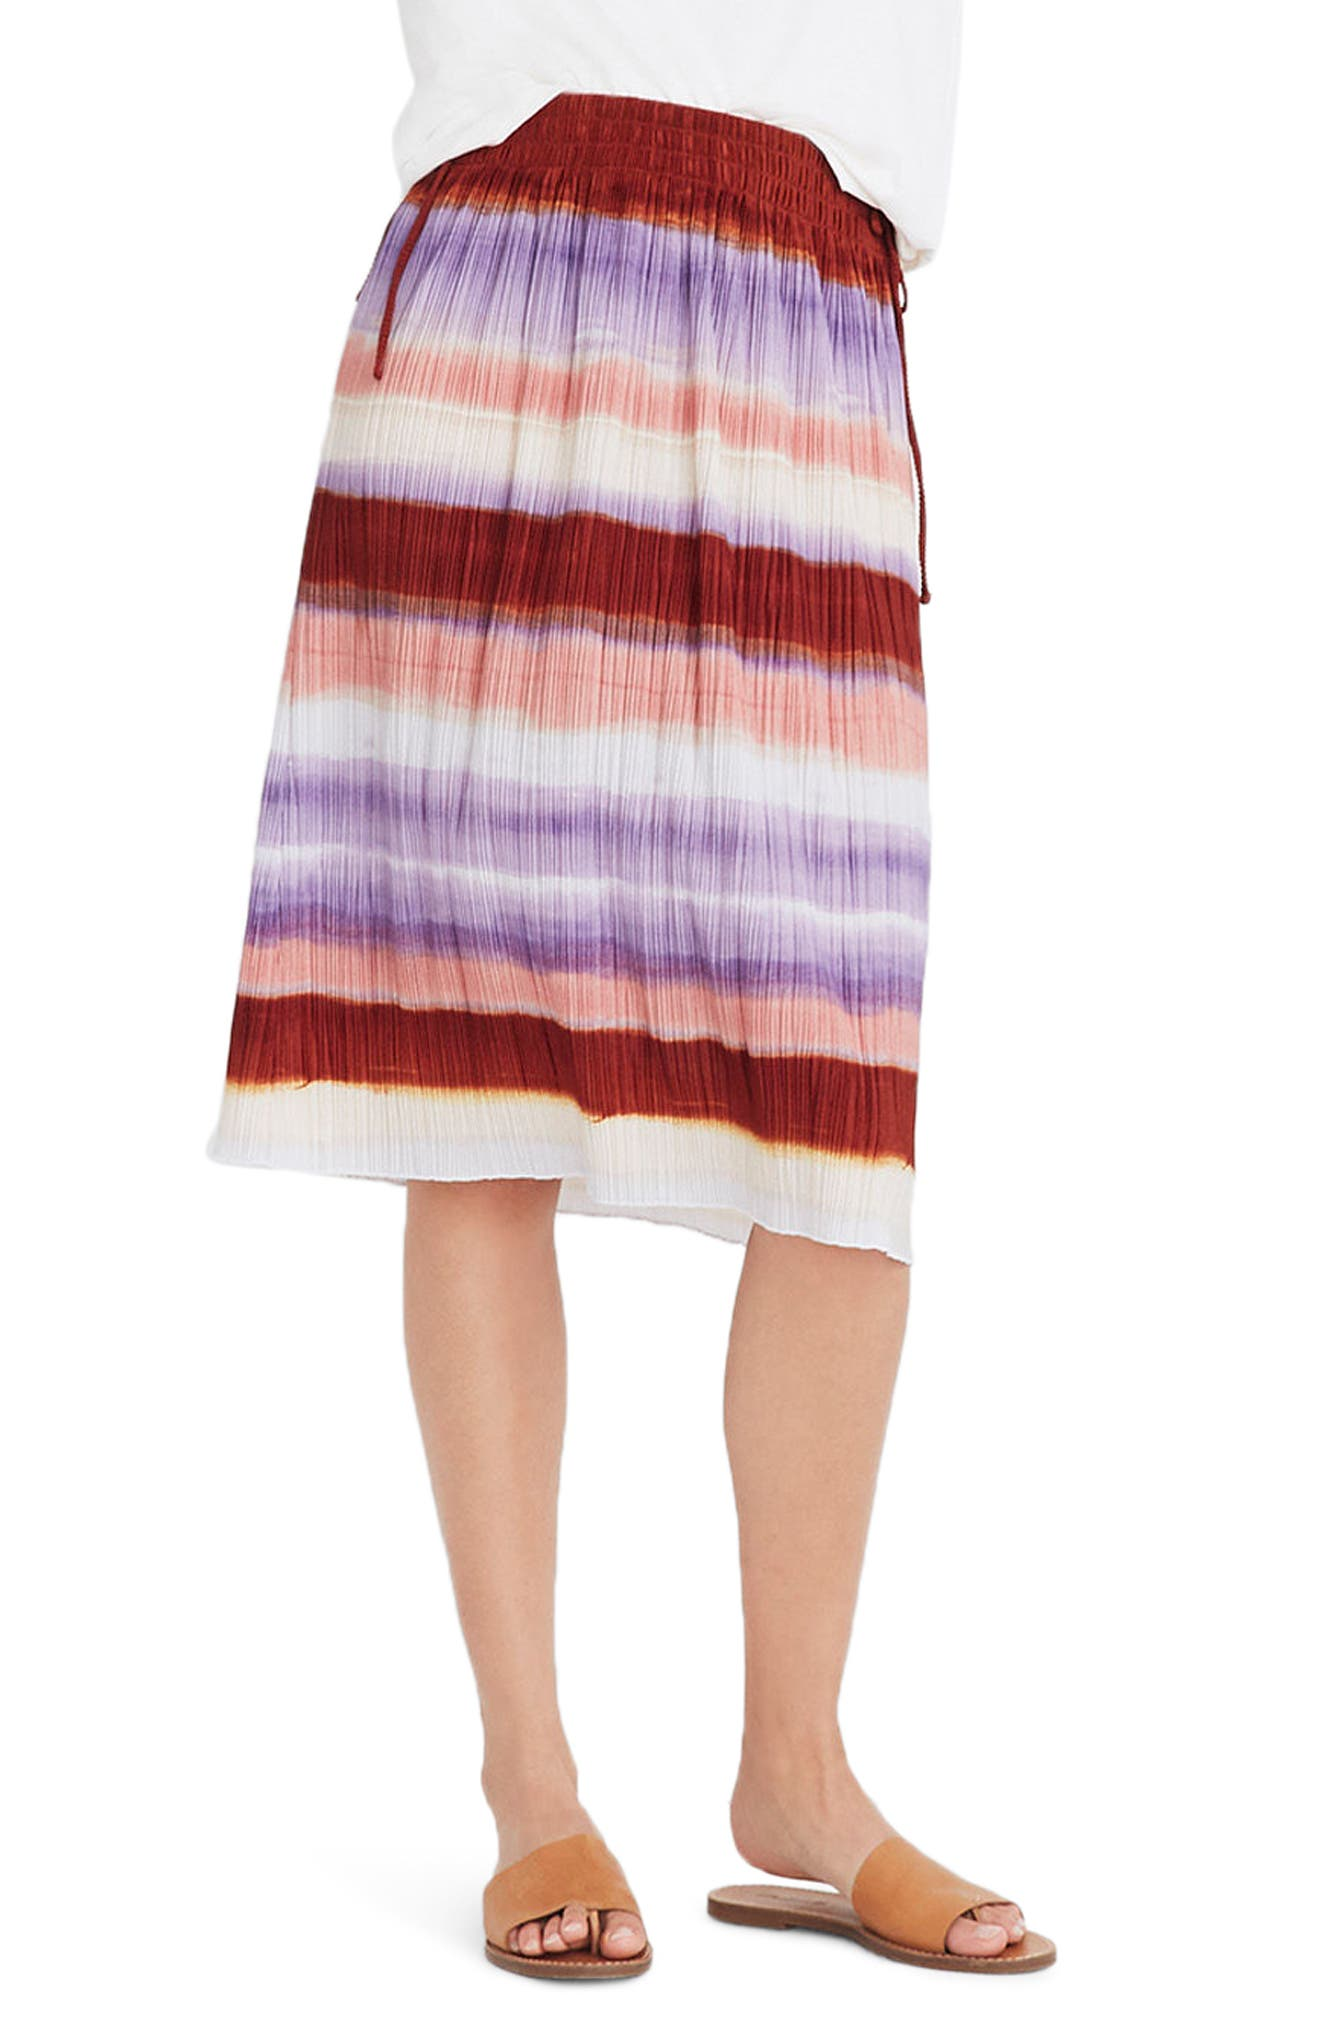 Texture & Thread Ombré Rainbow Micropleat Midi Skirt,                             Main thumbnail 1, color,                             CLEMENTINE CREAM